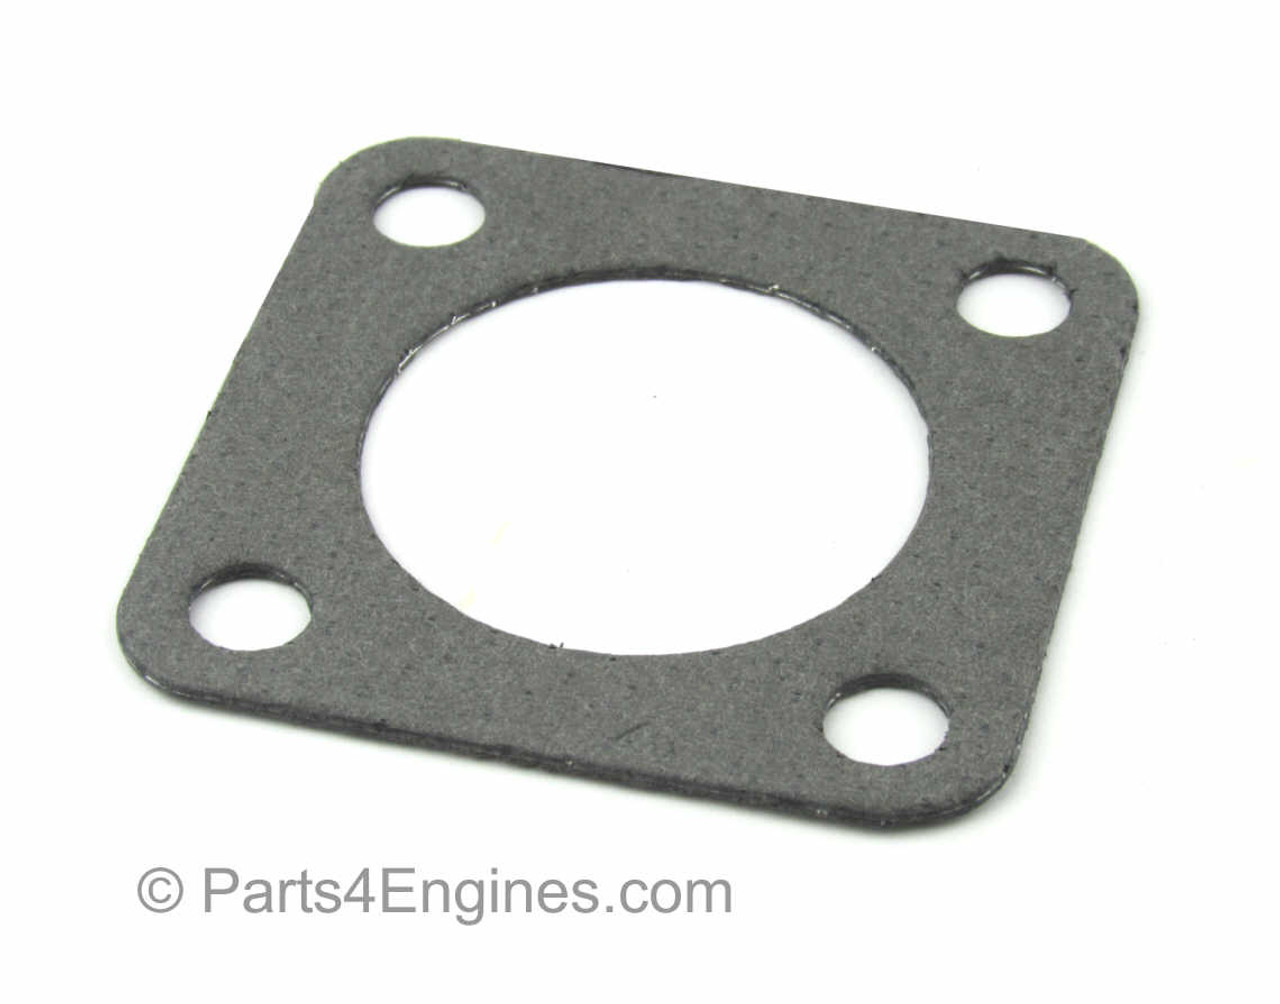 Volvo Penta D1-30 exhaust outlet gasket from Parts4engines.com